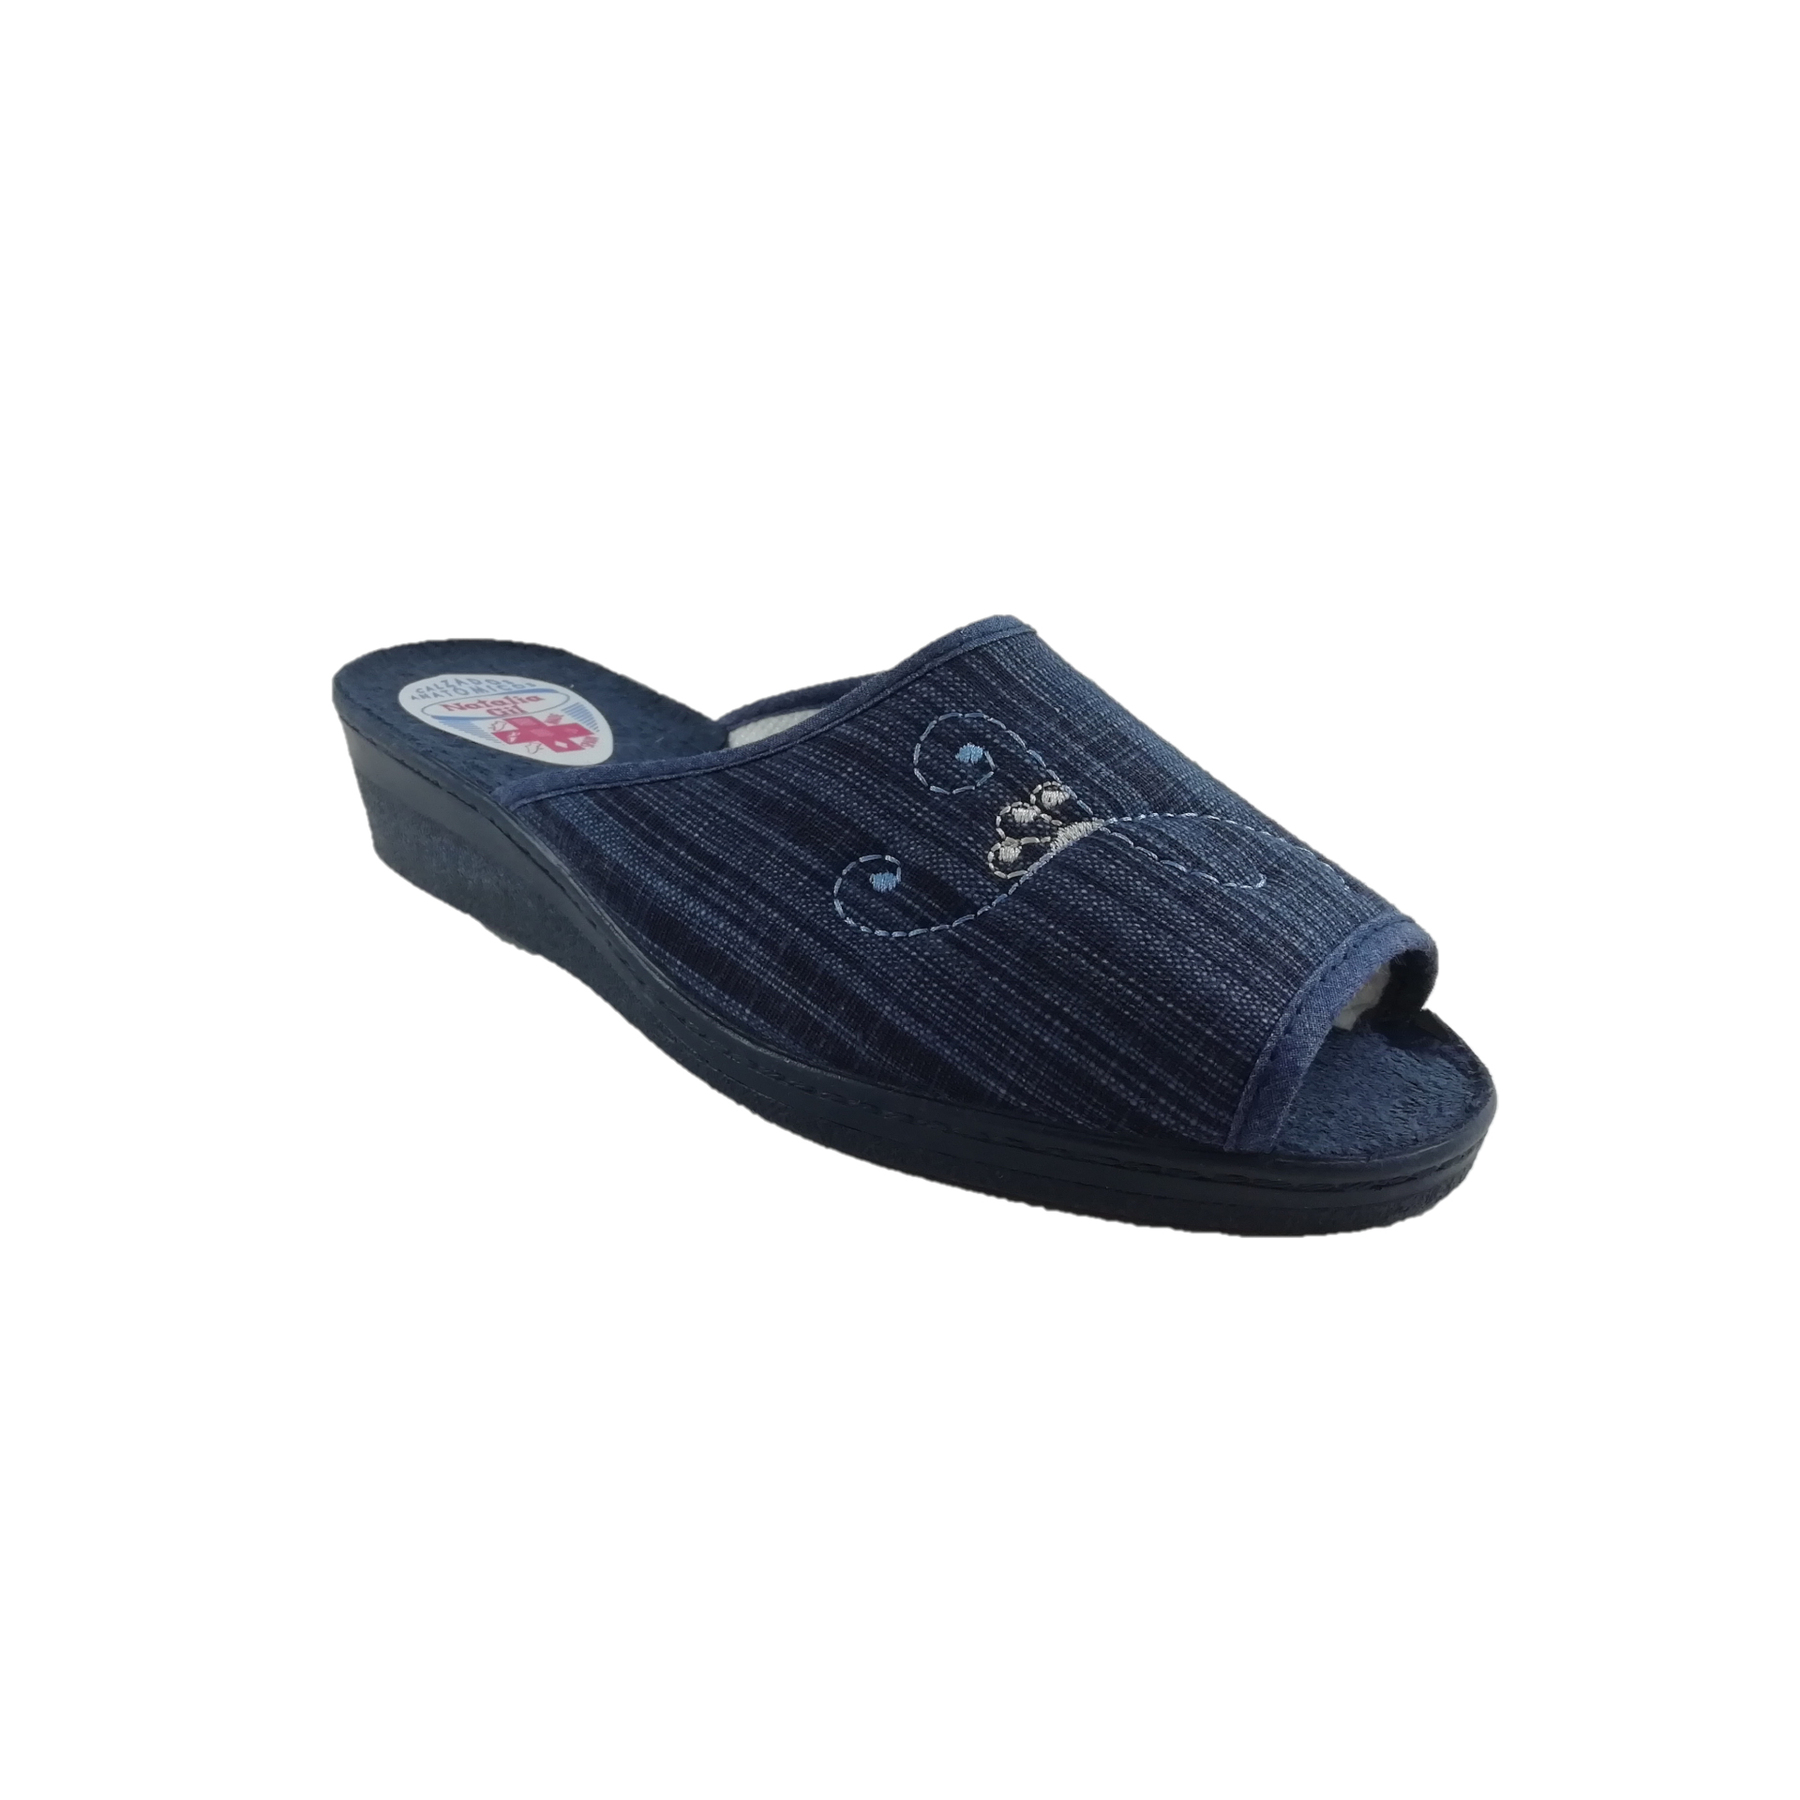 Slippers Anatomical Homespun For Women With Lining Towel And Wedge Half Hard Gum Vulcanized.